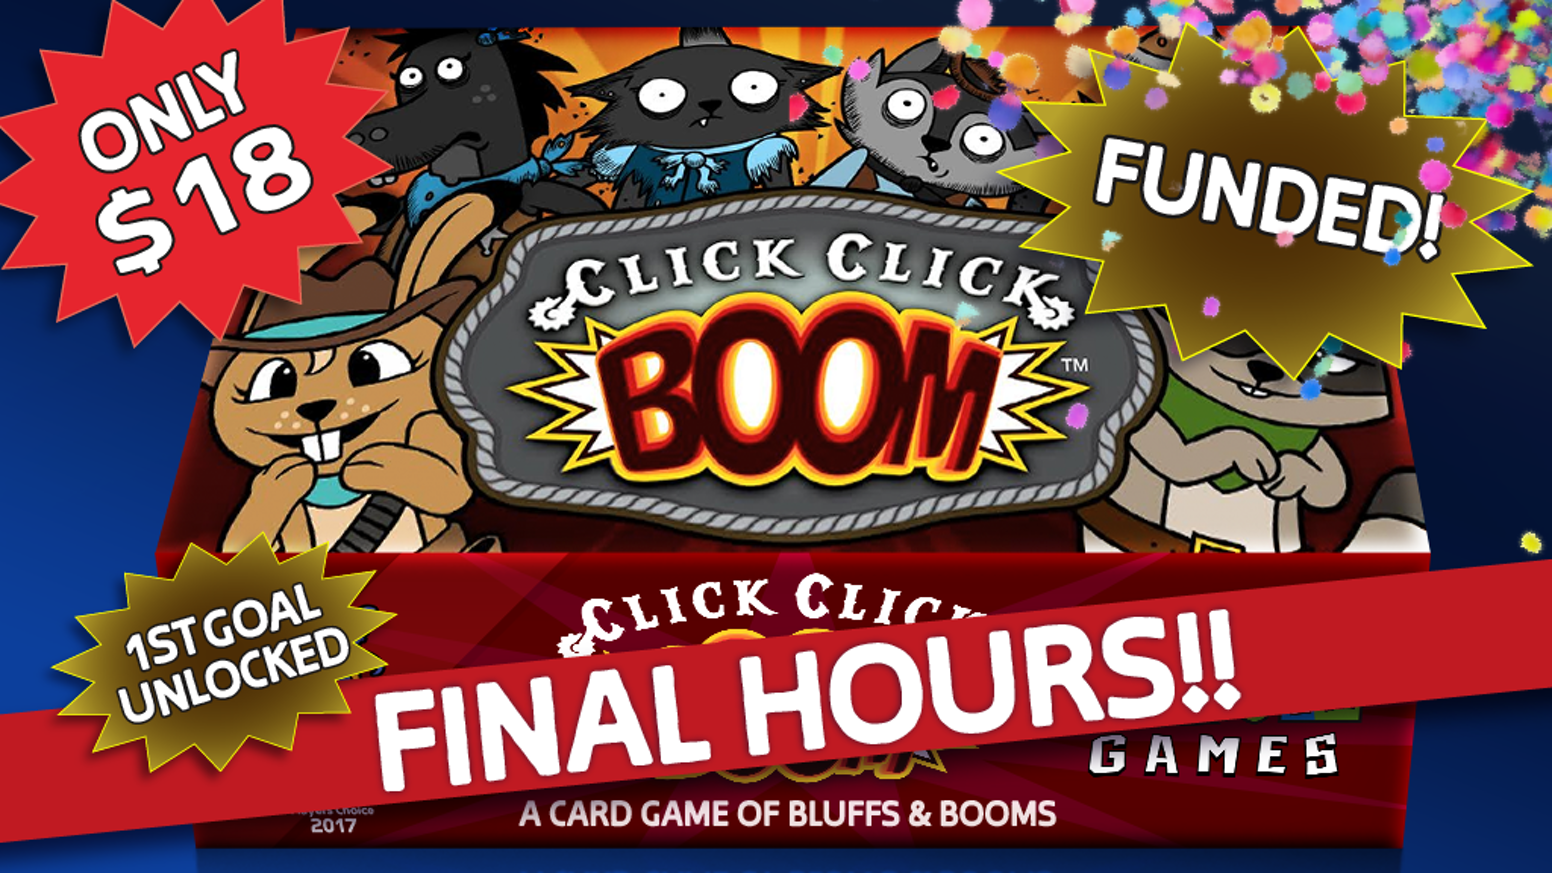 A tension-filled card game of bluffing, deception, and Russian roulette.  Compete in 3 Shootouts to claim Pots, Steal Coins, and WIN!